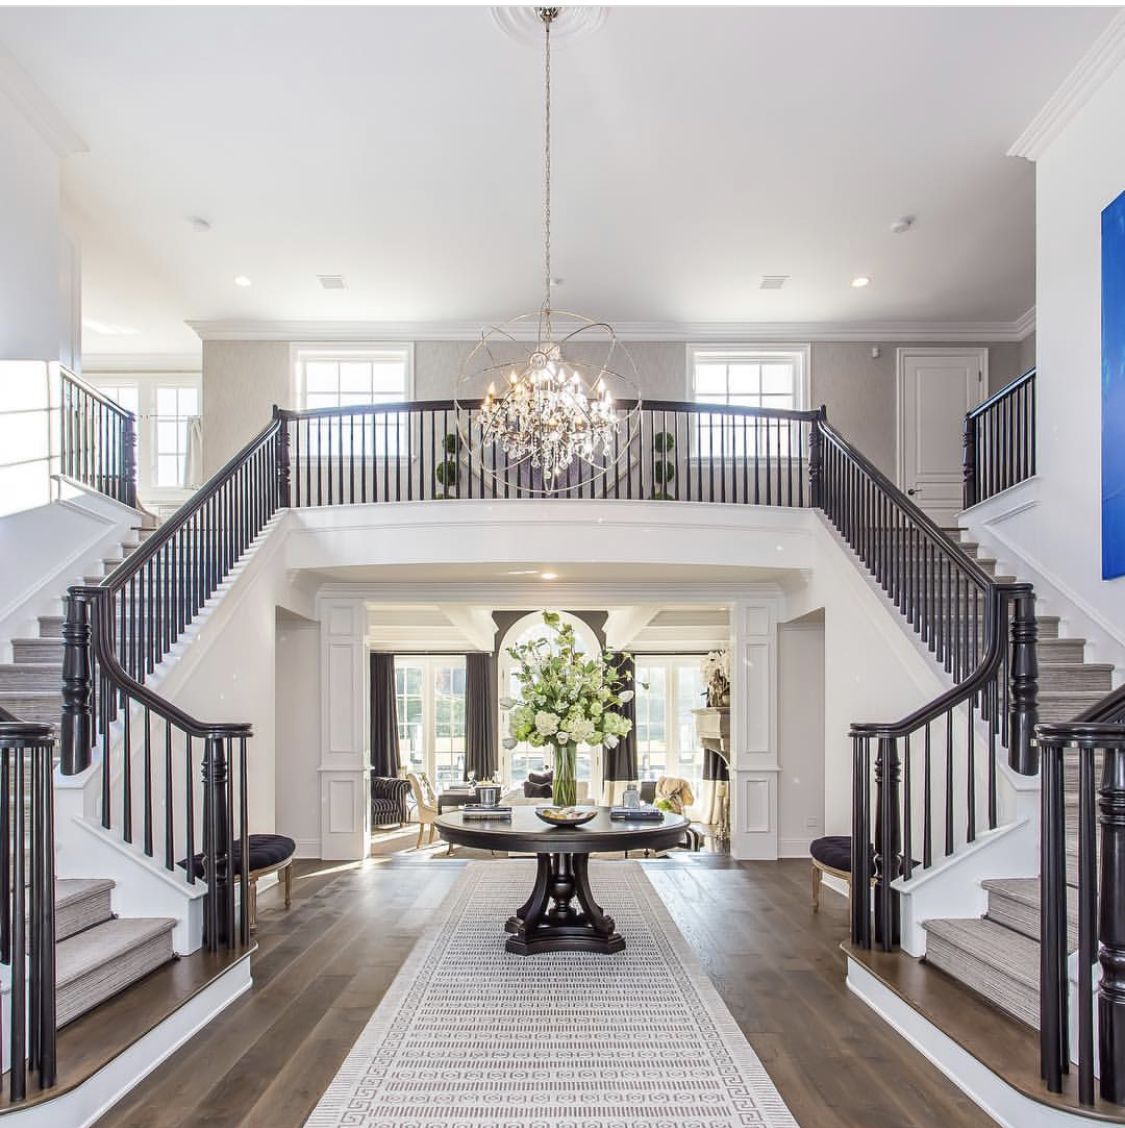 Welcoming grand entry home design decor interior dream also pin by  slice   pi on in pinterest house rh